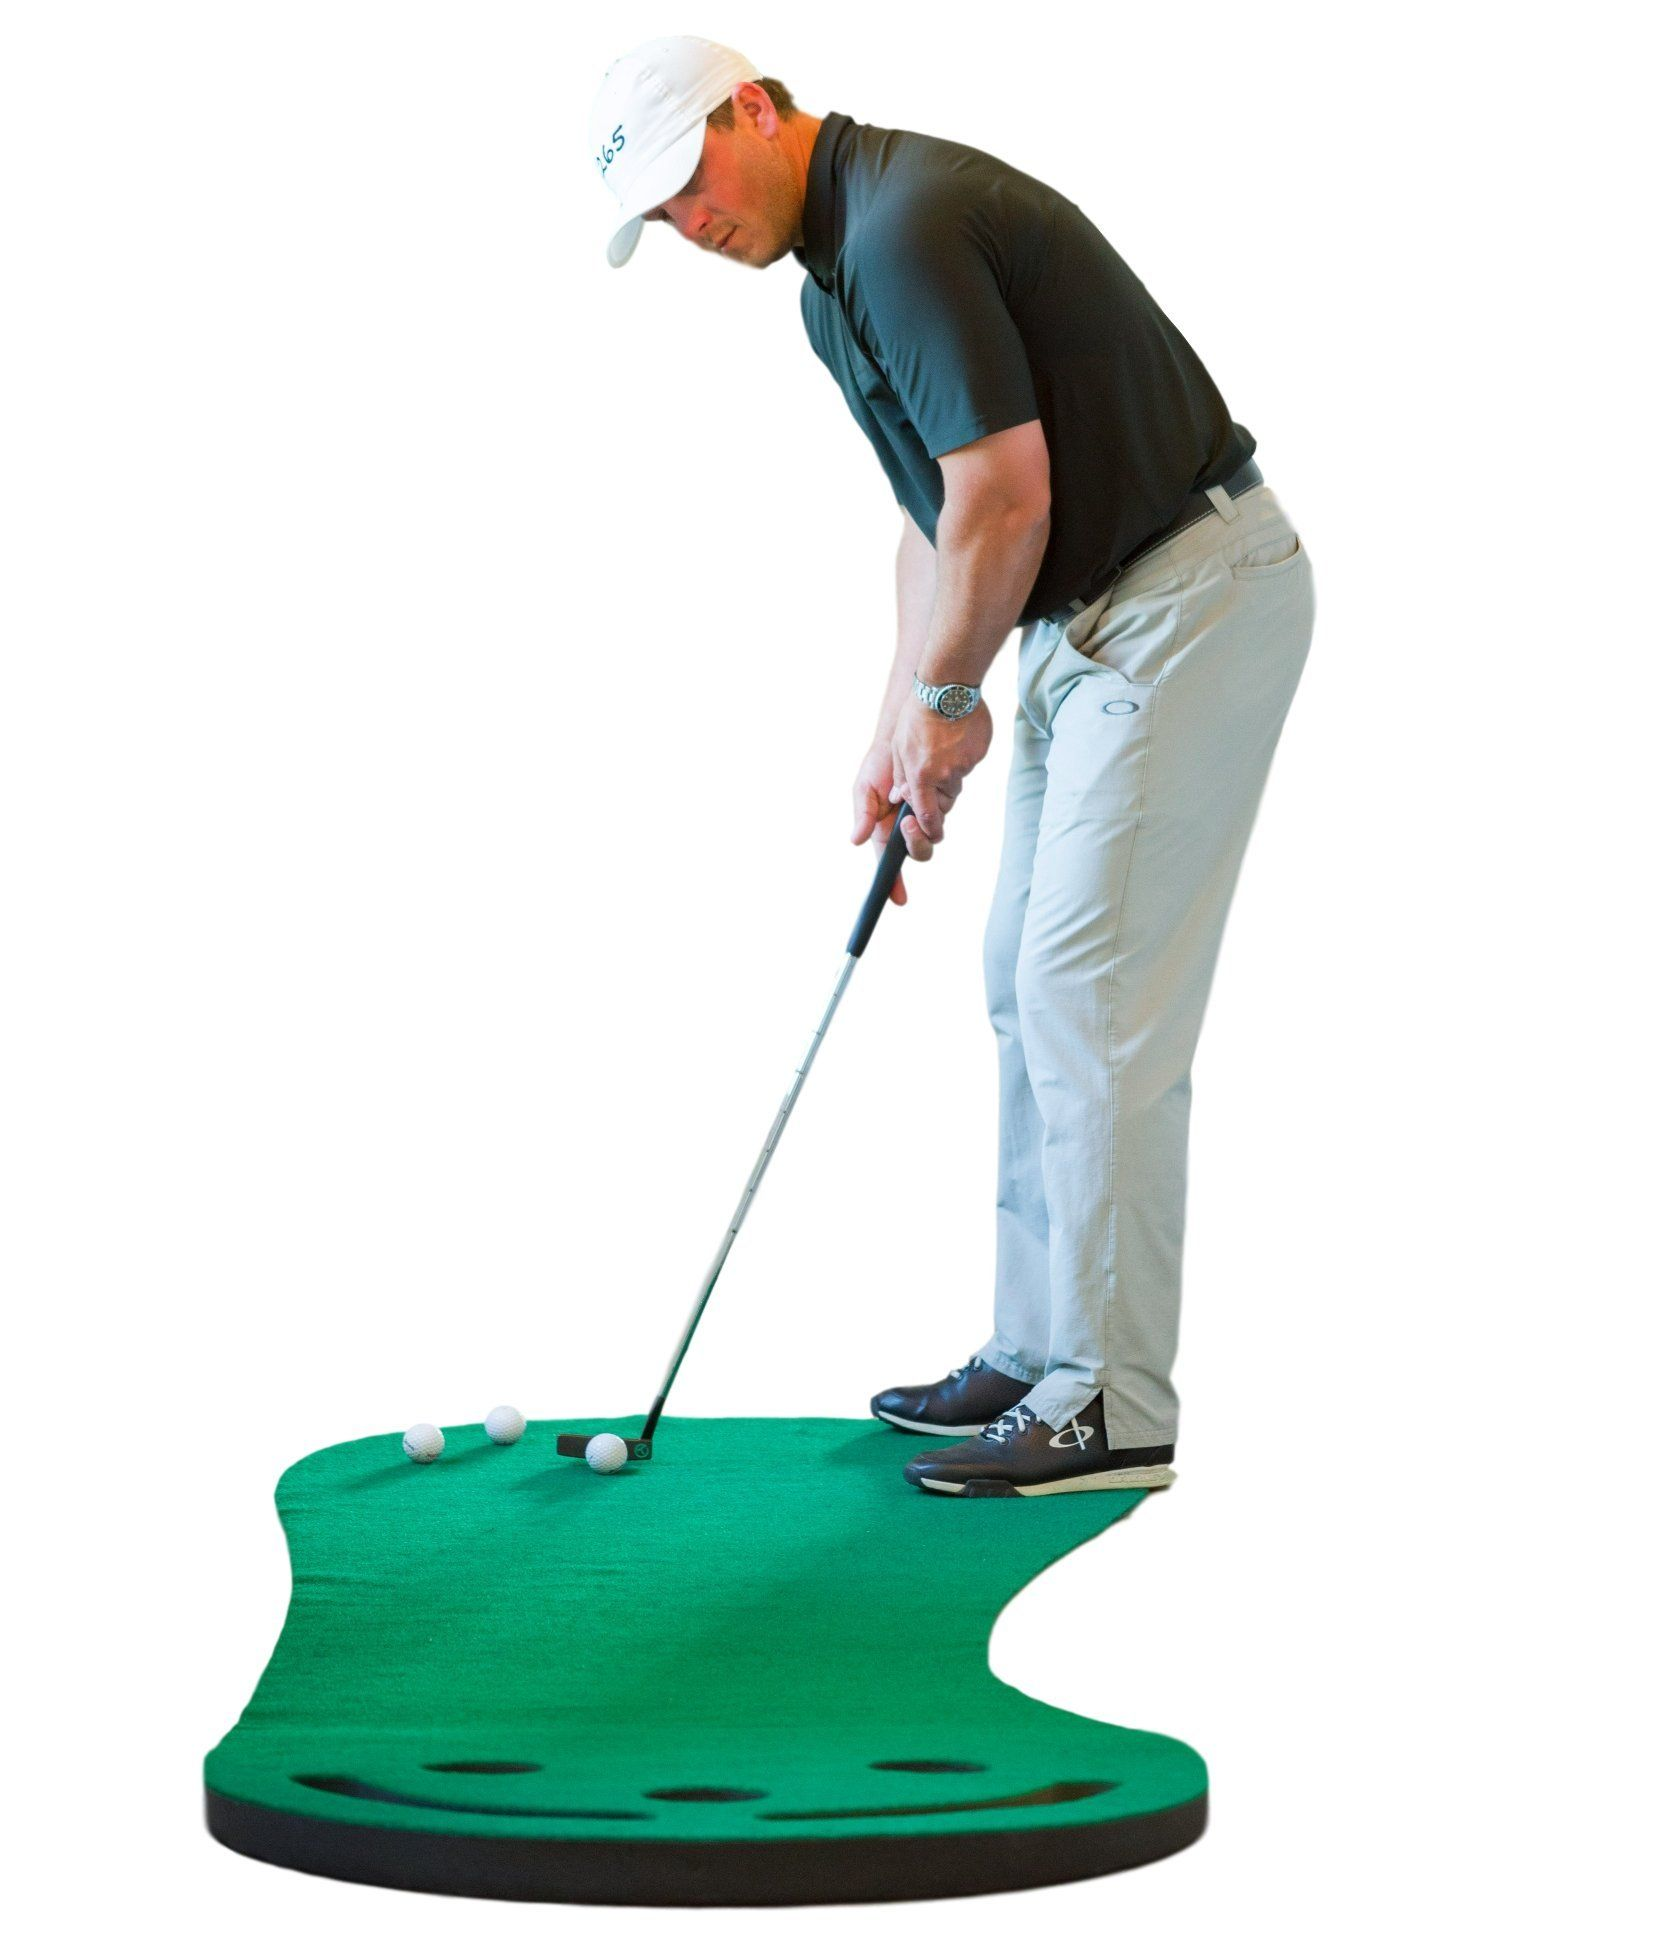 indoor hitting club dp country mat mats real com golf sports outdoor heavy use elite feel outdoors duty amazon durapro x